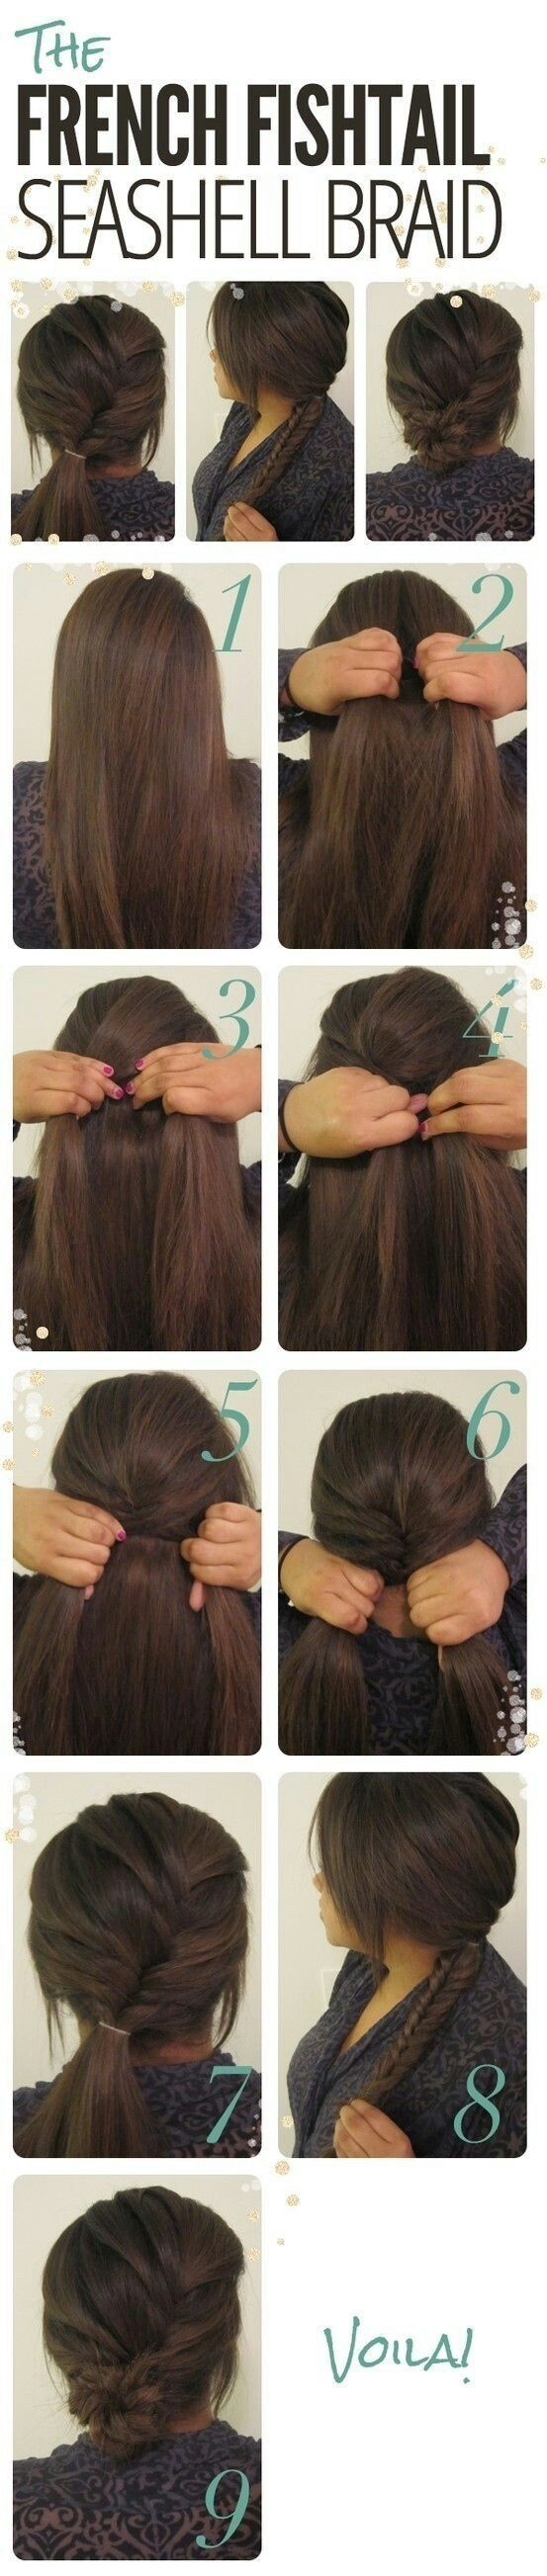 French Fishtail Seashell Braid by marcy